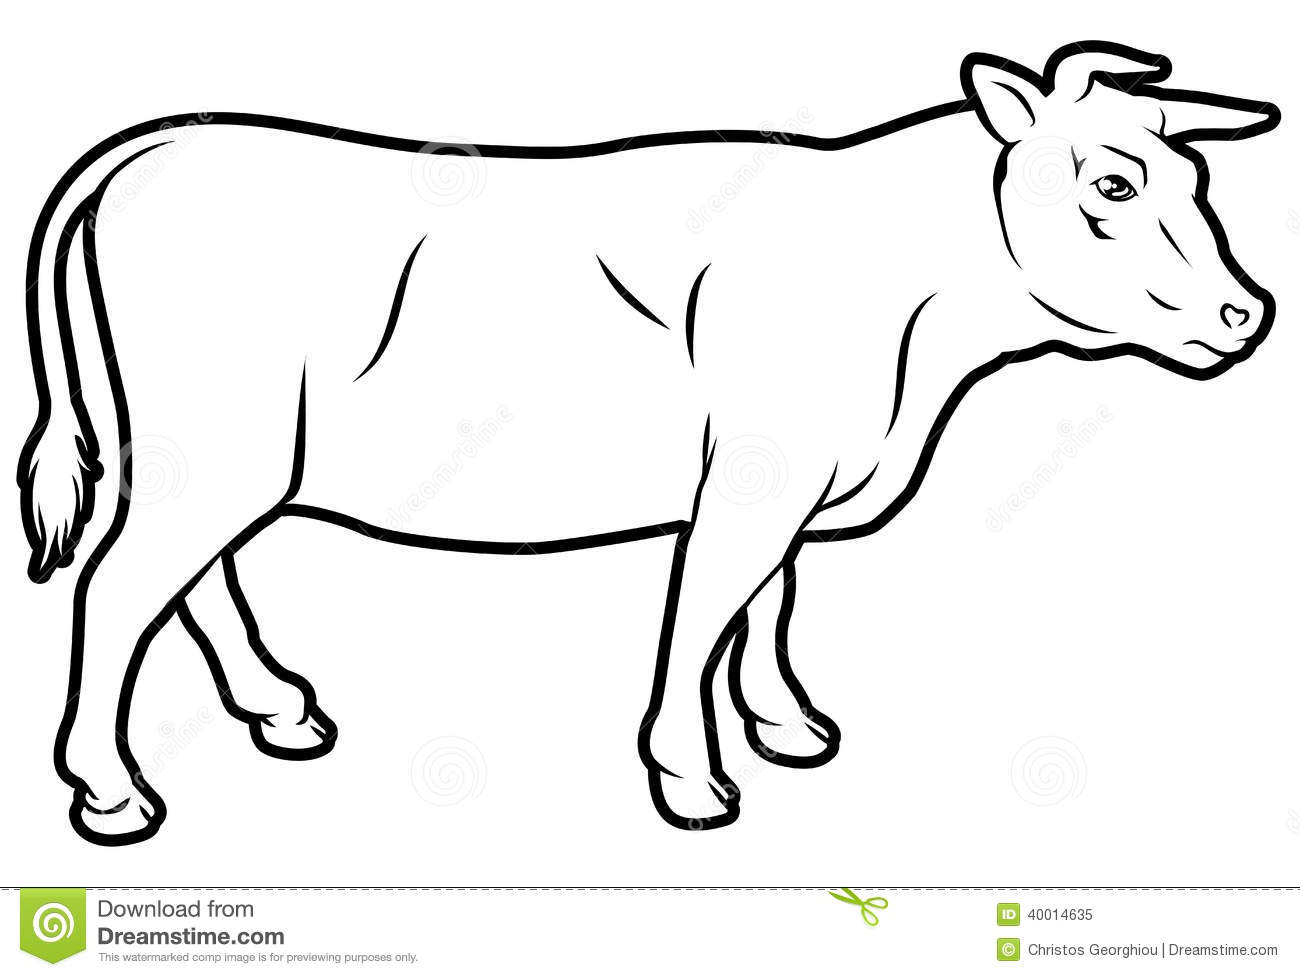 Death Of Saul together with Why Prime Rib At Christmas additionally Services further Buck Skull Svg Cut File Can Be Used With likewise Get To Know Your Meat Beef Cut Guide. on cow cuts